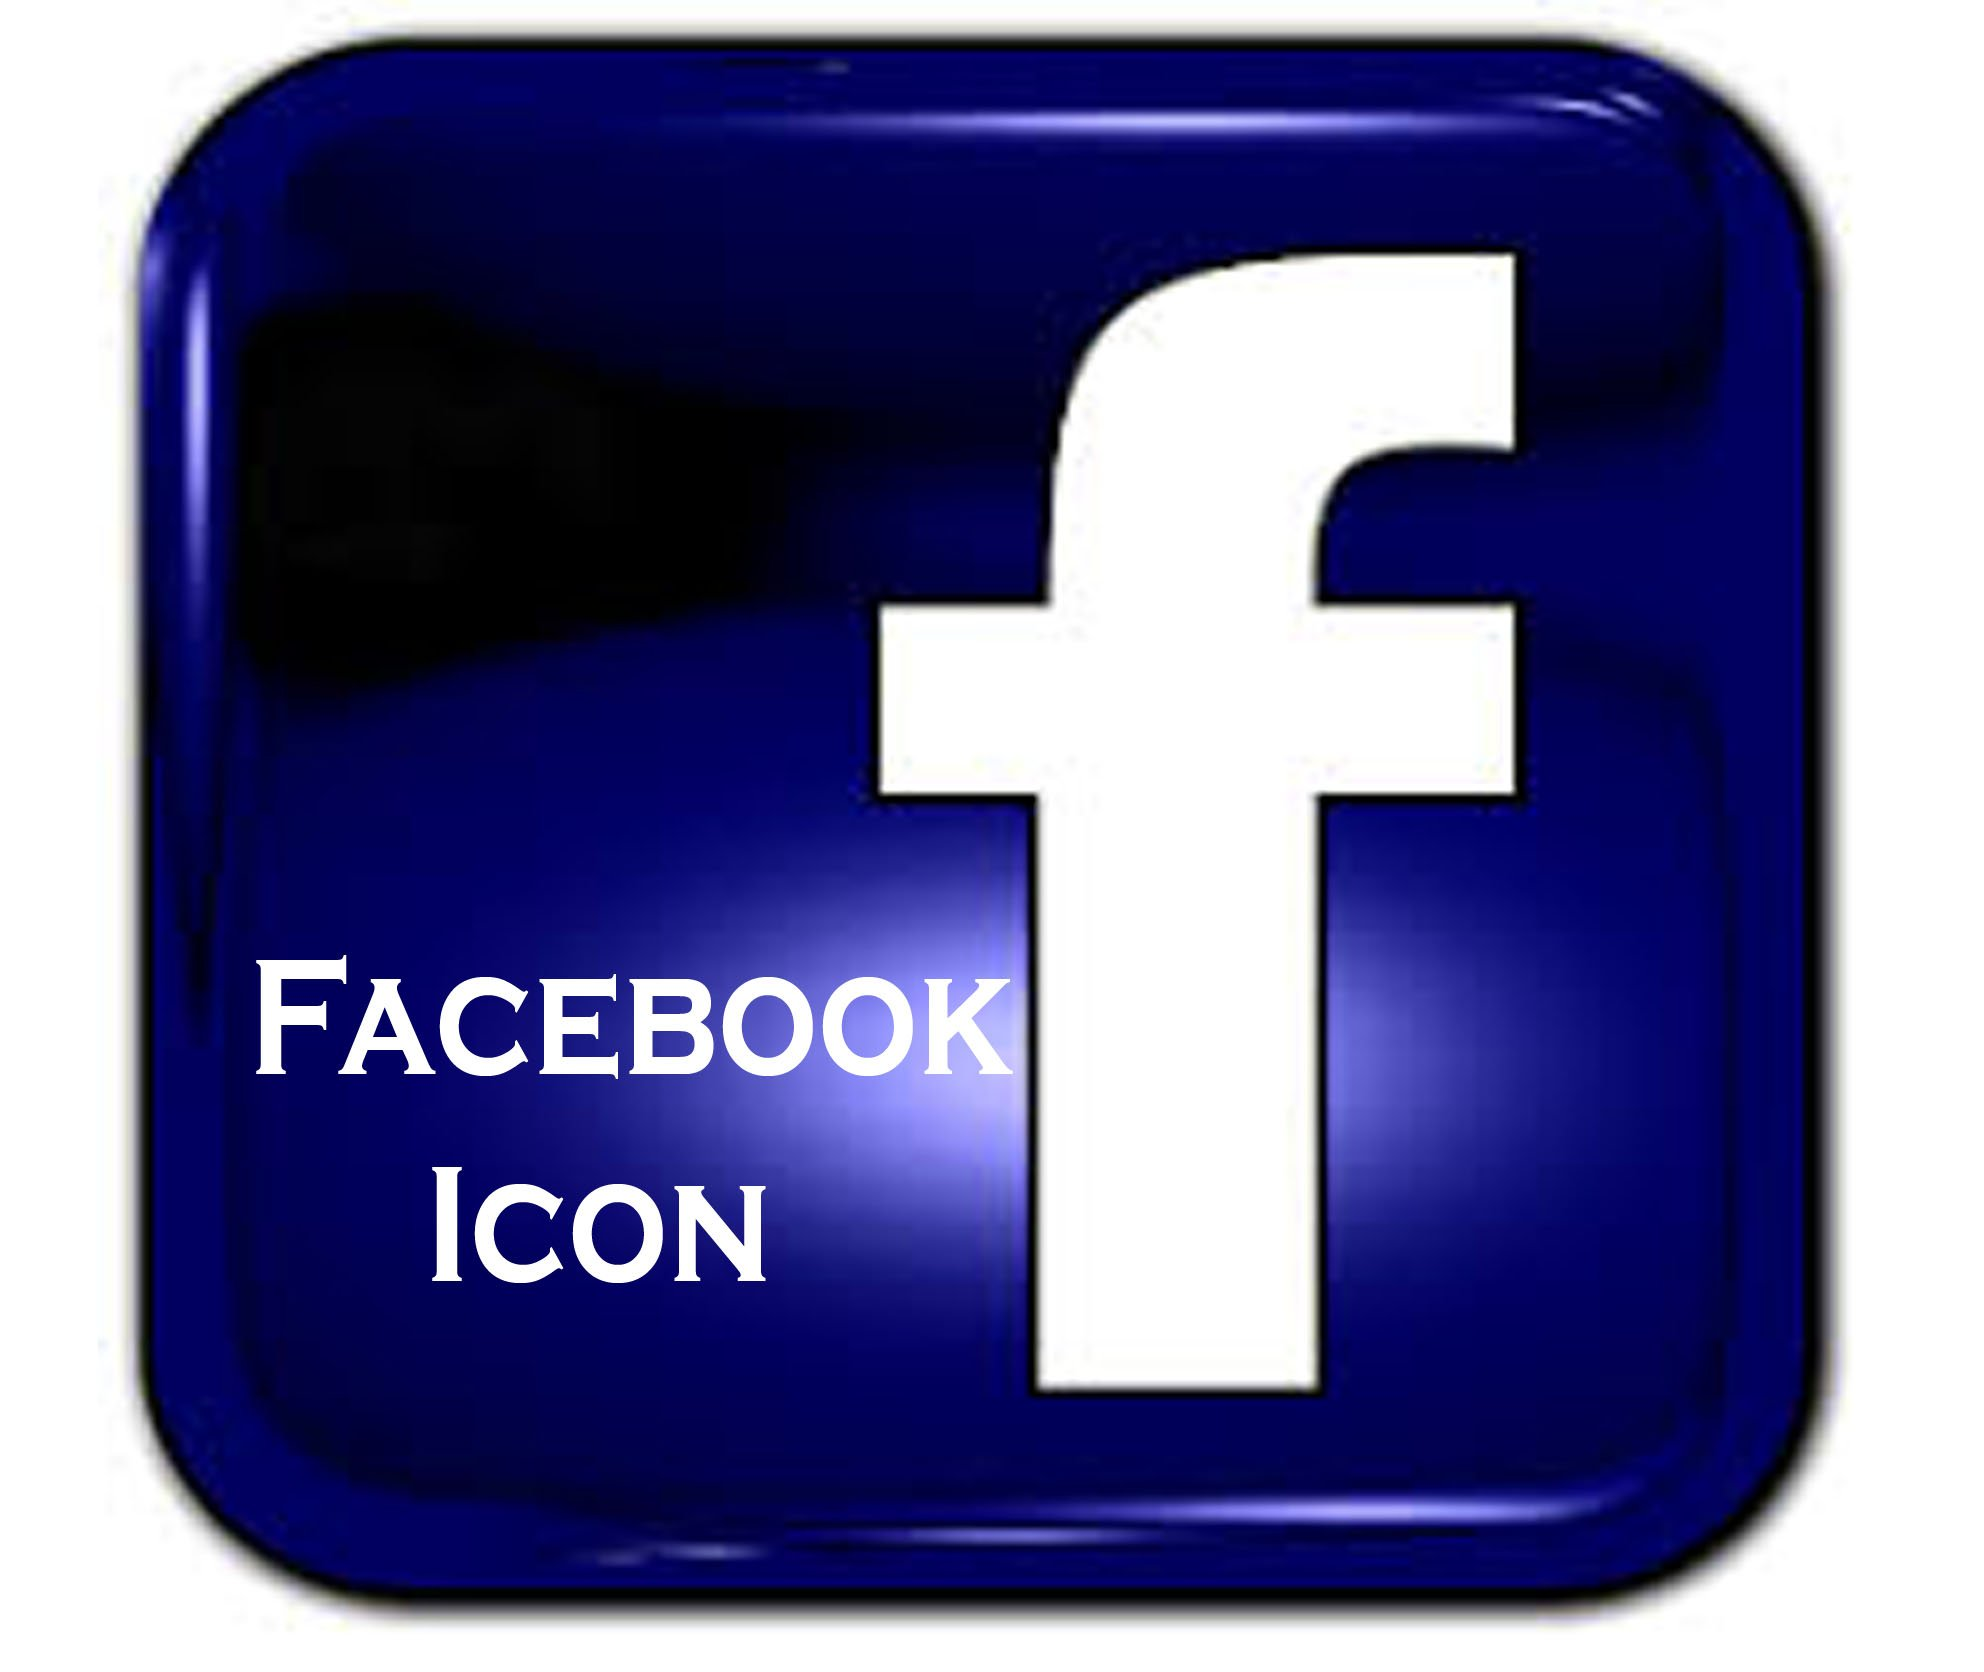 Facebook Icon - Facebook Logo | Facebook Account | www.Facebook.com